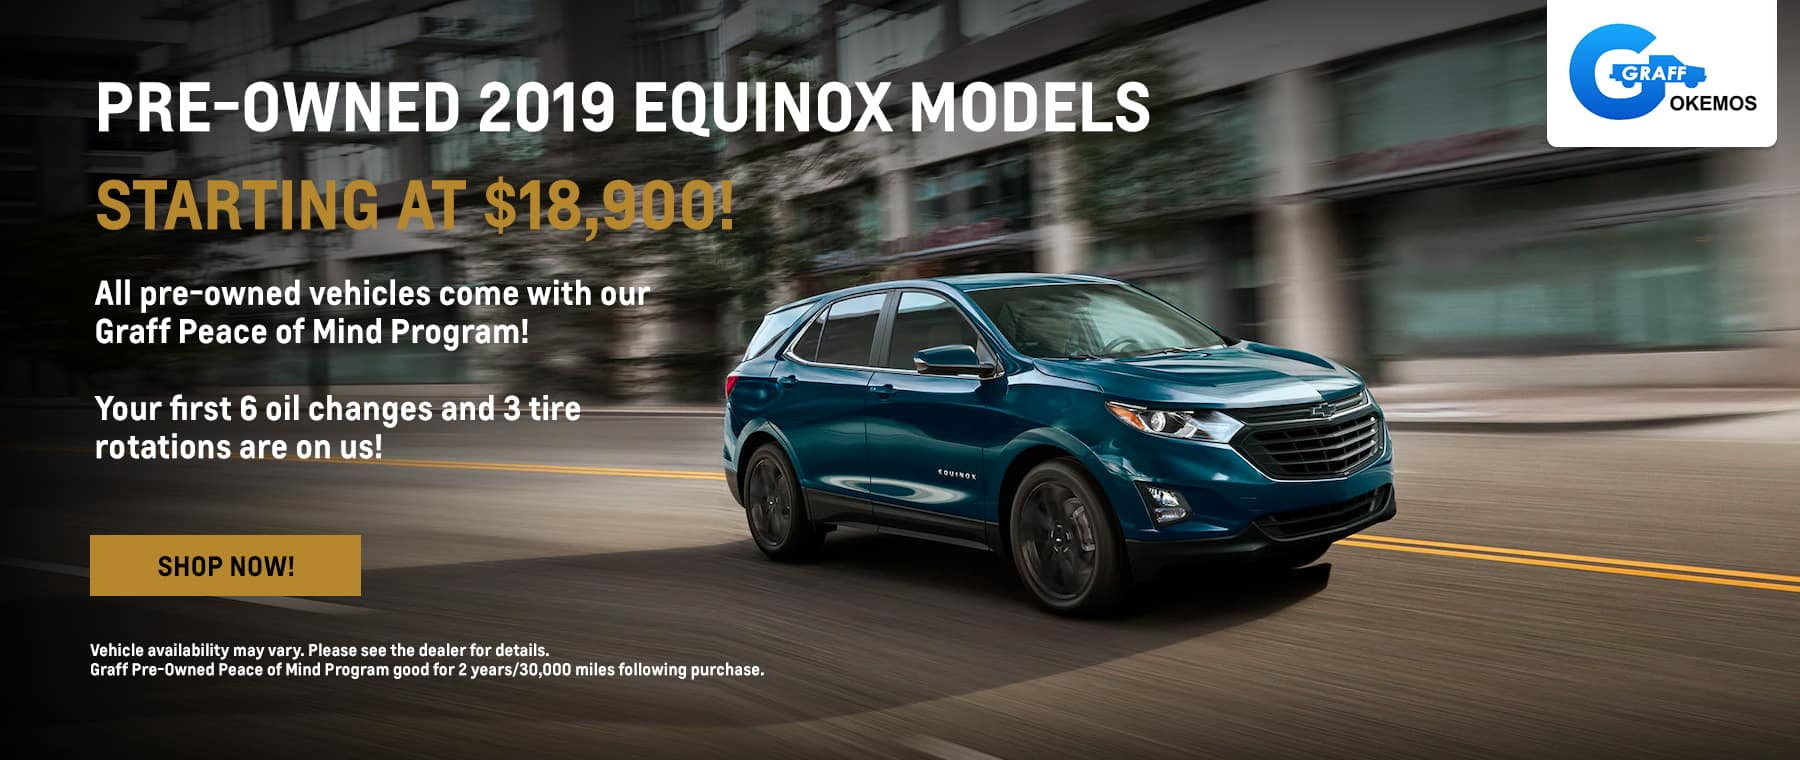 Pre-Owned 2019 Equinox Models Starting at $18,900!